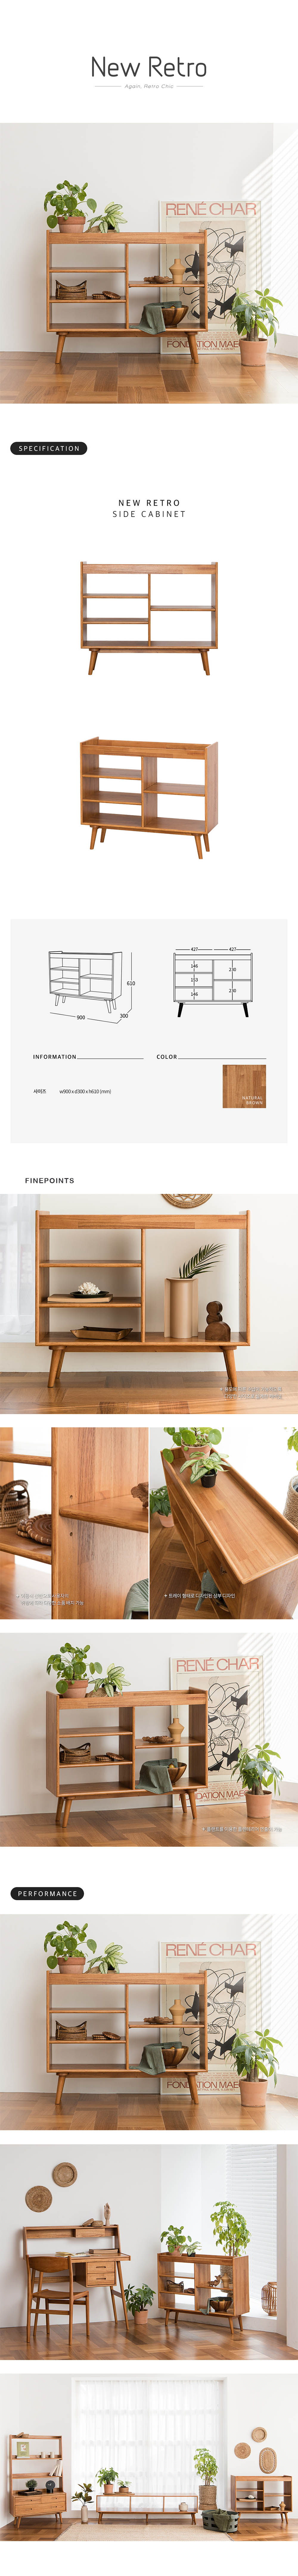 New_Retro_Entryway_Display_Shelf_specs_by_born_in_colour